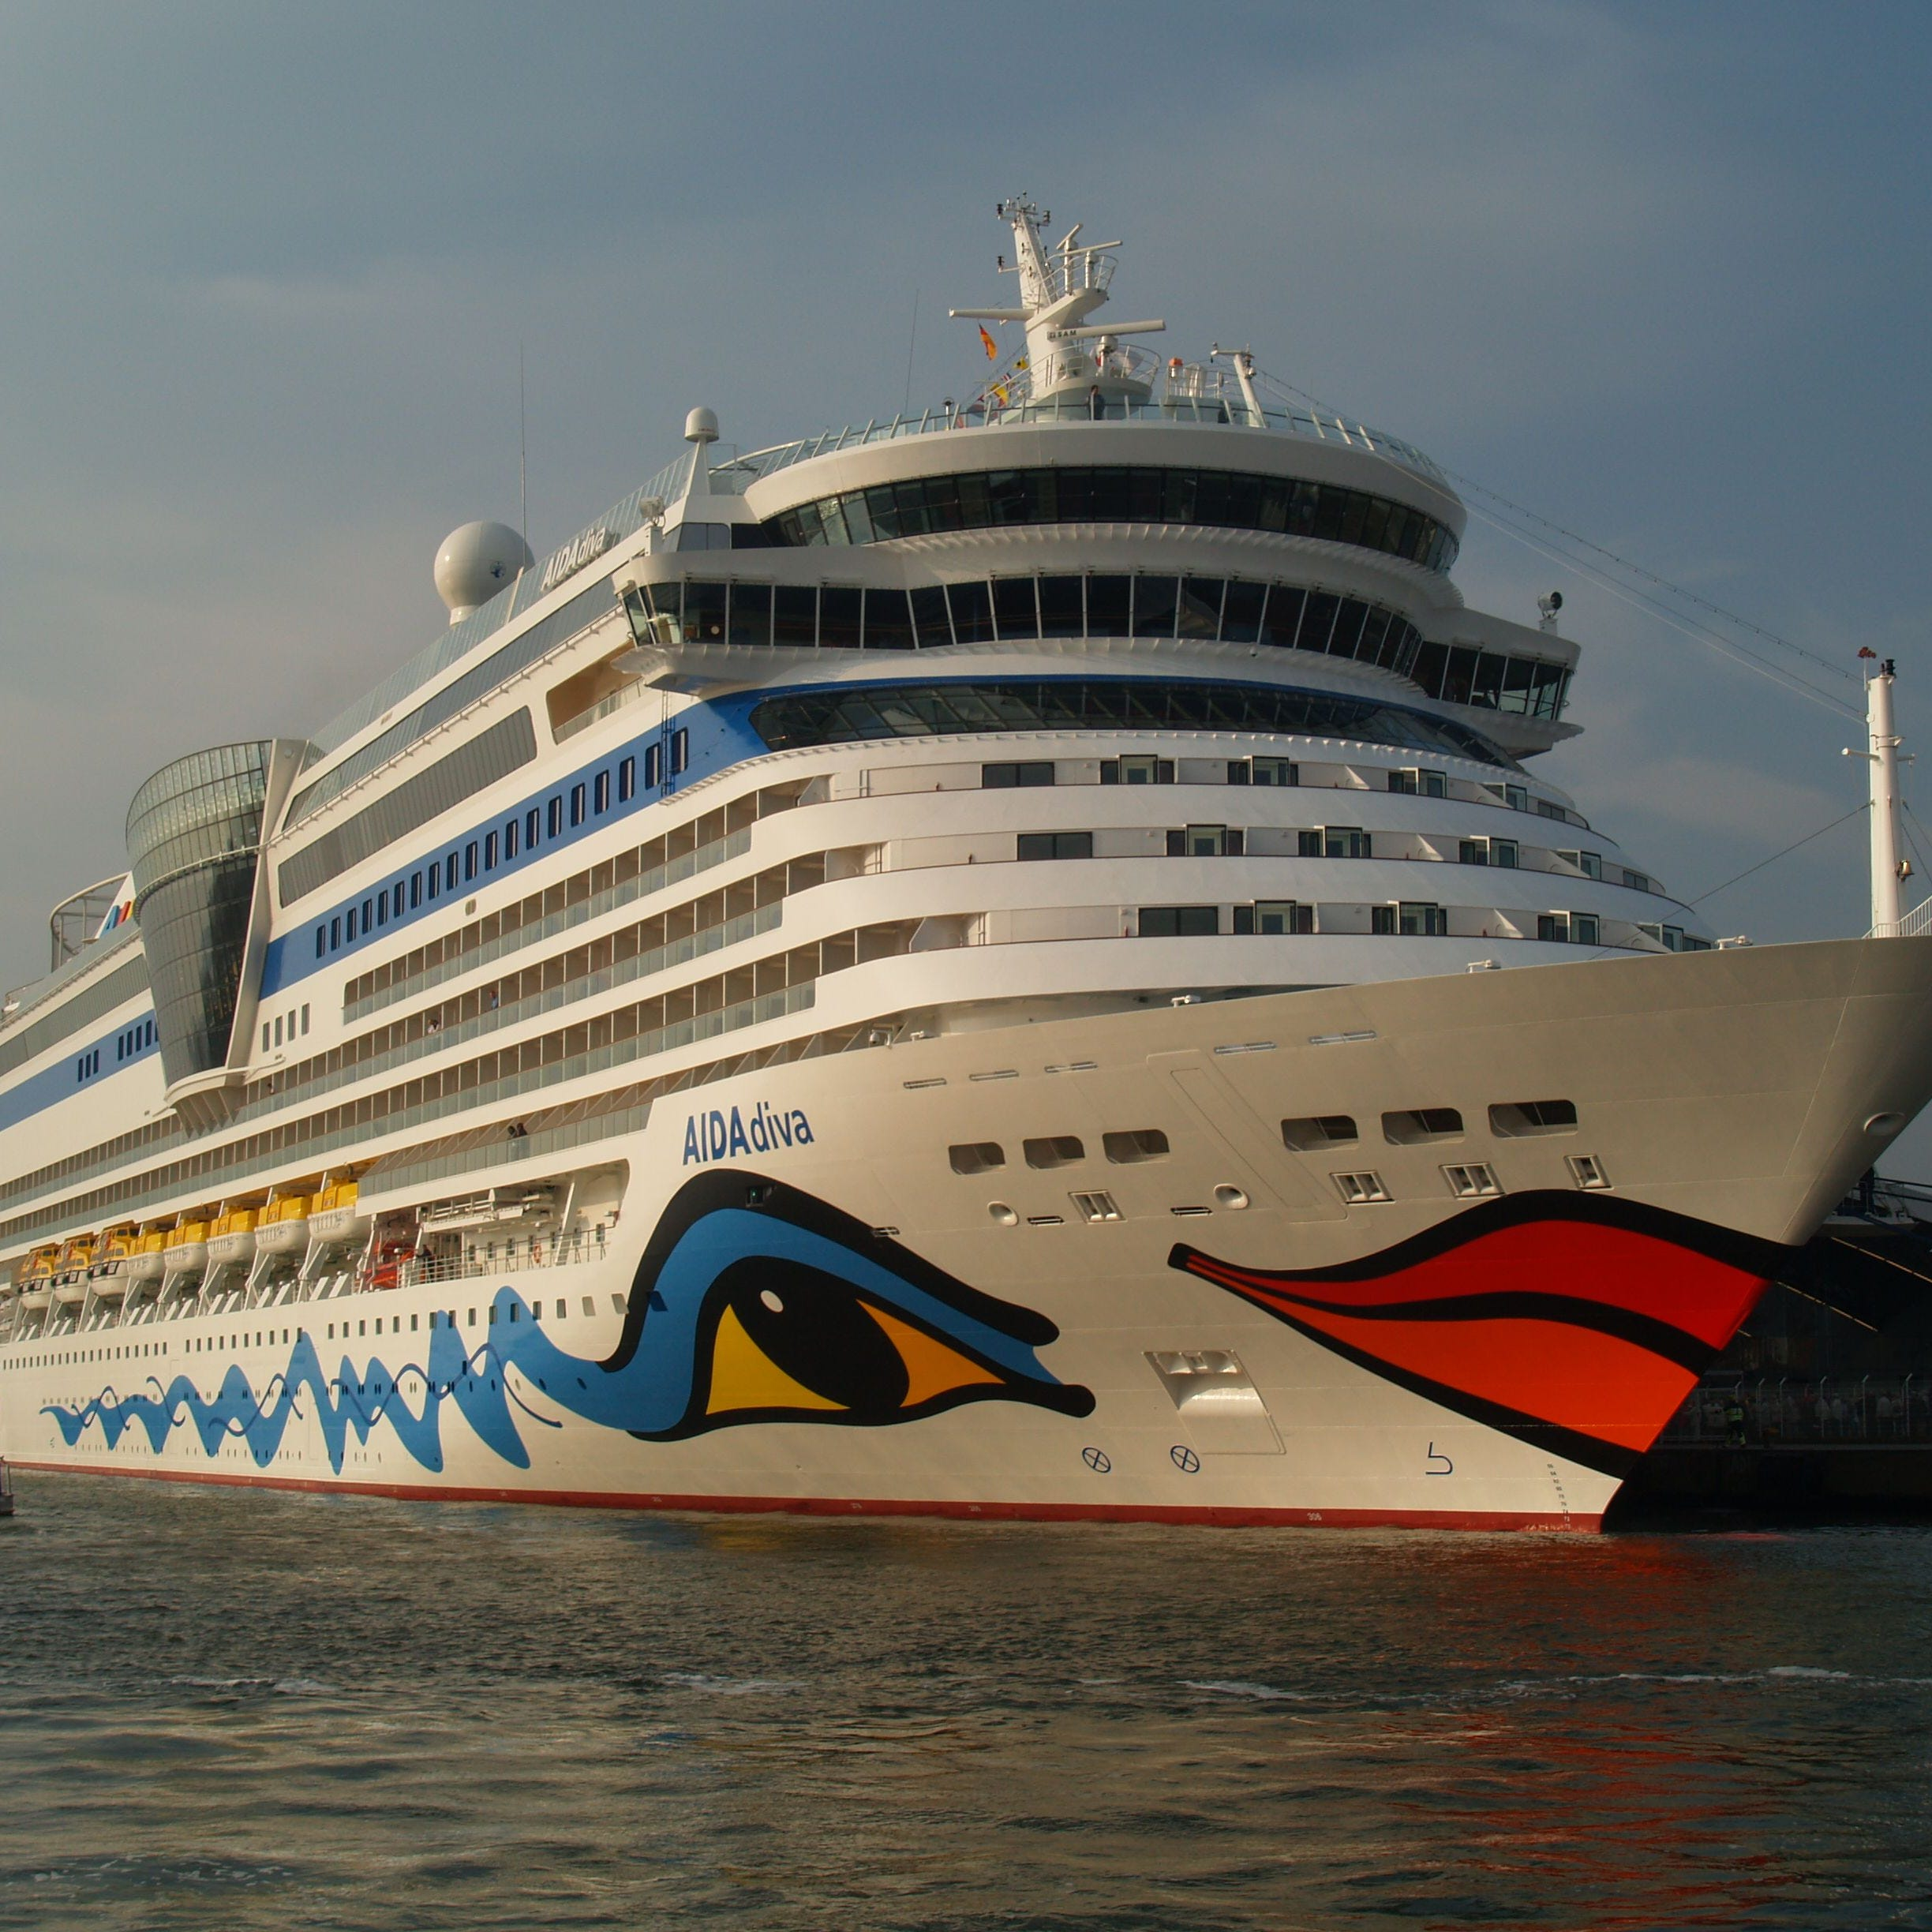 Yes, those are giant red-and-orange lips on the front of a cruise ship. German line Aida Cruises has made the multi-deck-high lips on its ship hulls a signature. Aida is credited with starting the hull art trend way back in the 1990s.